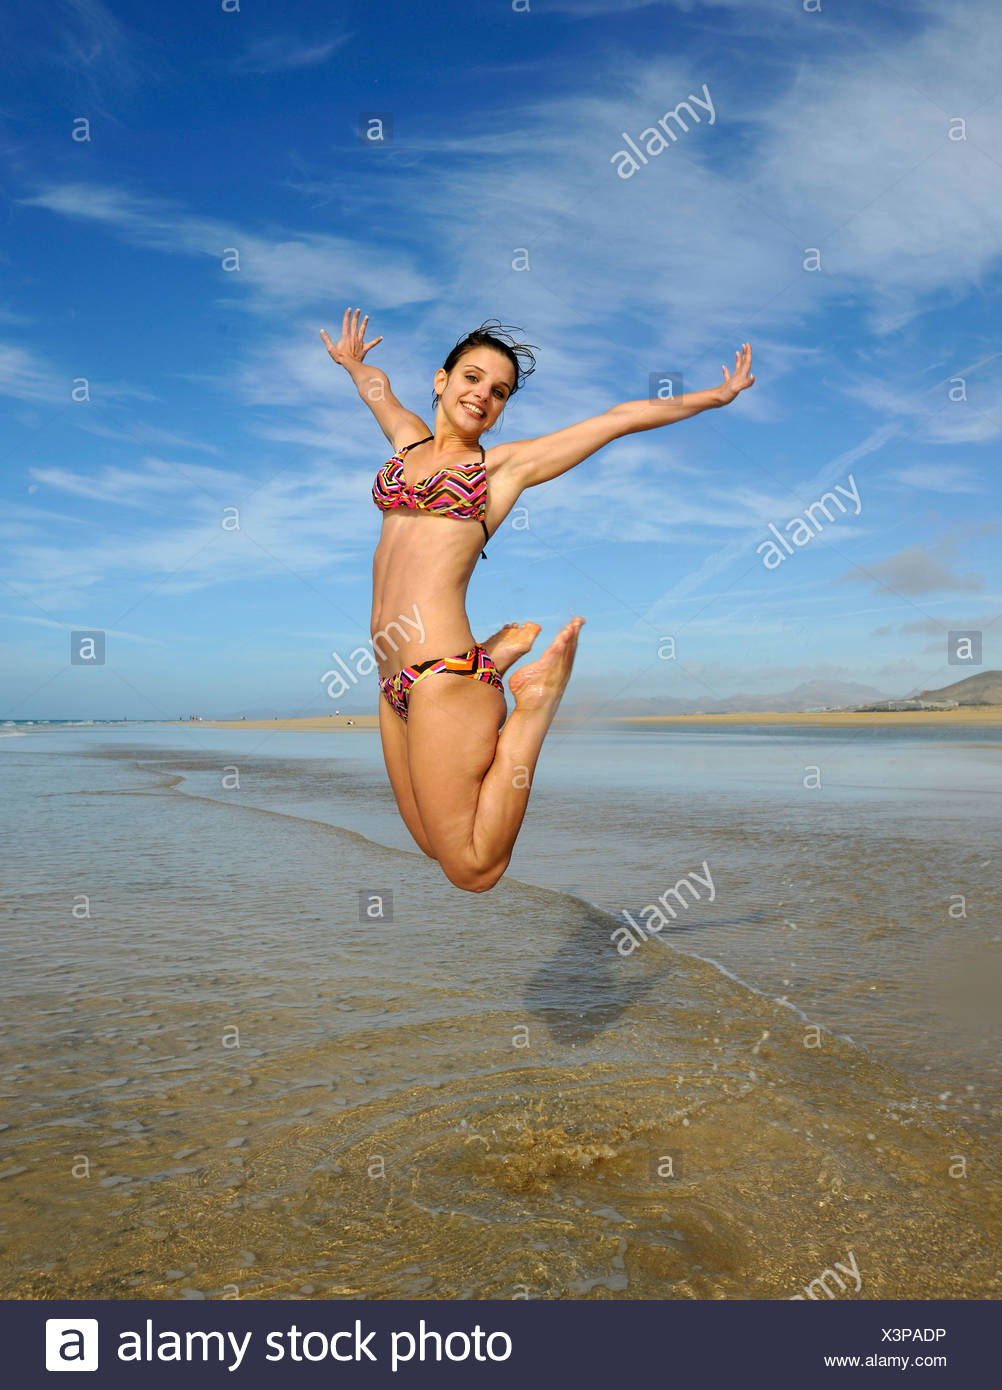 Leap into the air, young woman at the sea, symbolic image for vitality, lust for life, Playa de Sotavento de Jandia beach - Stock Image